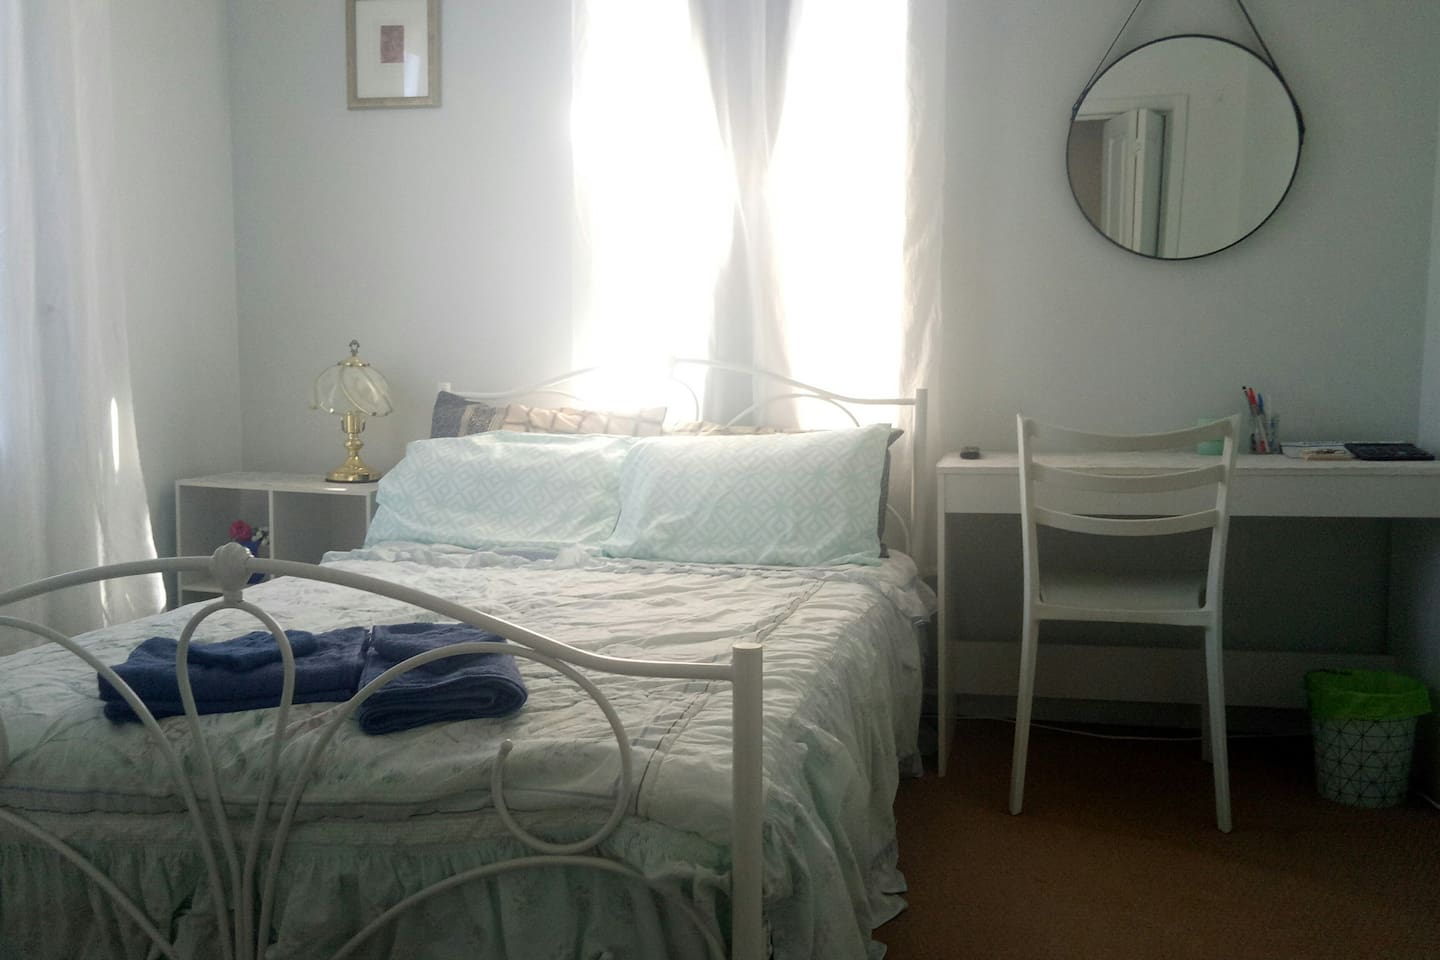 Private room, comfy new double bed, desk, large mirror, lamp, two airy windows, ceiling fan.